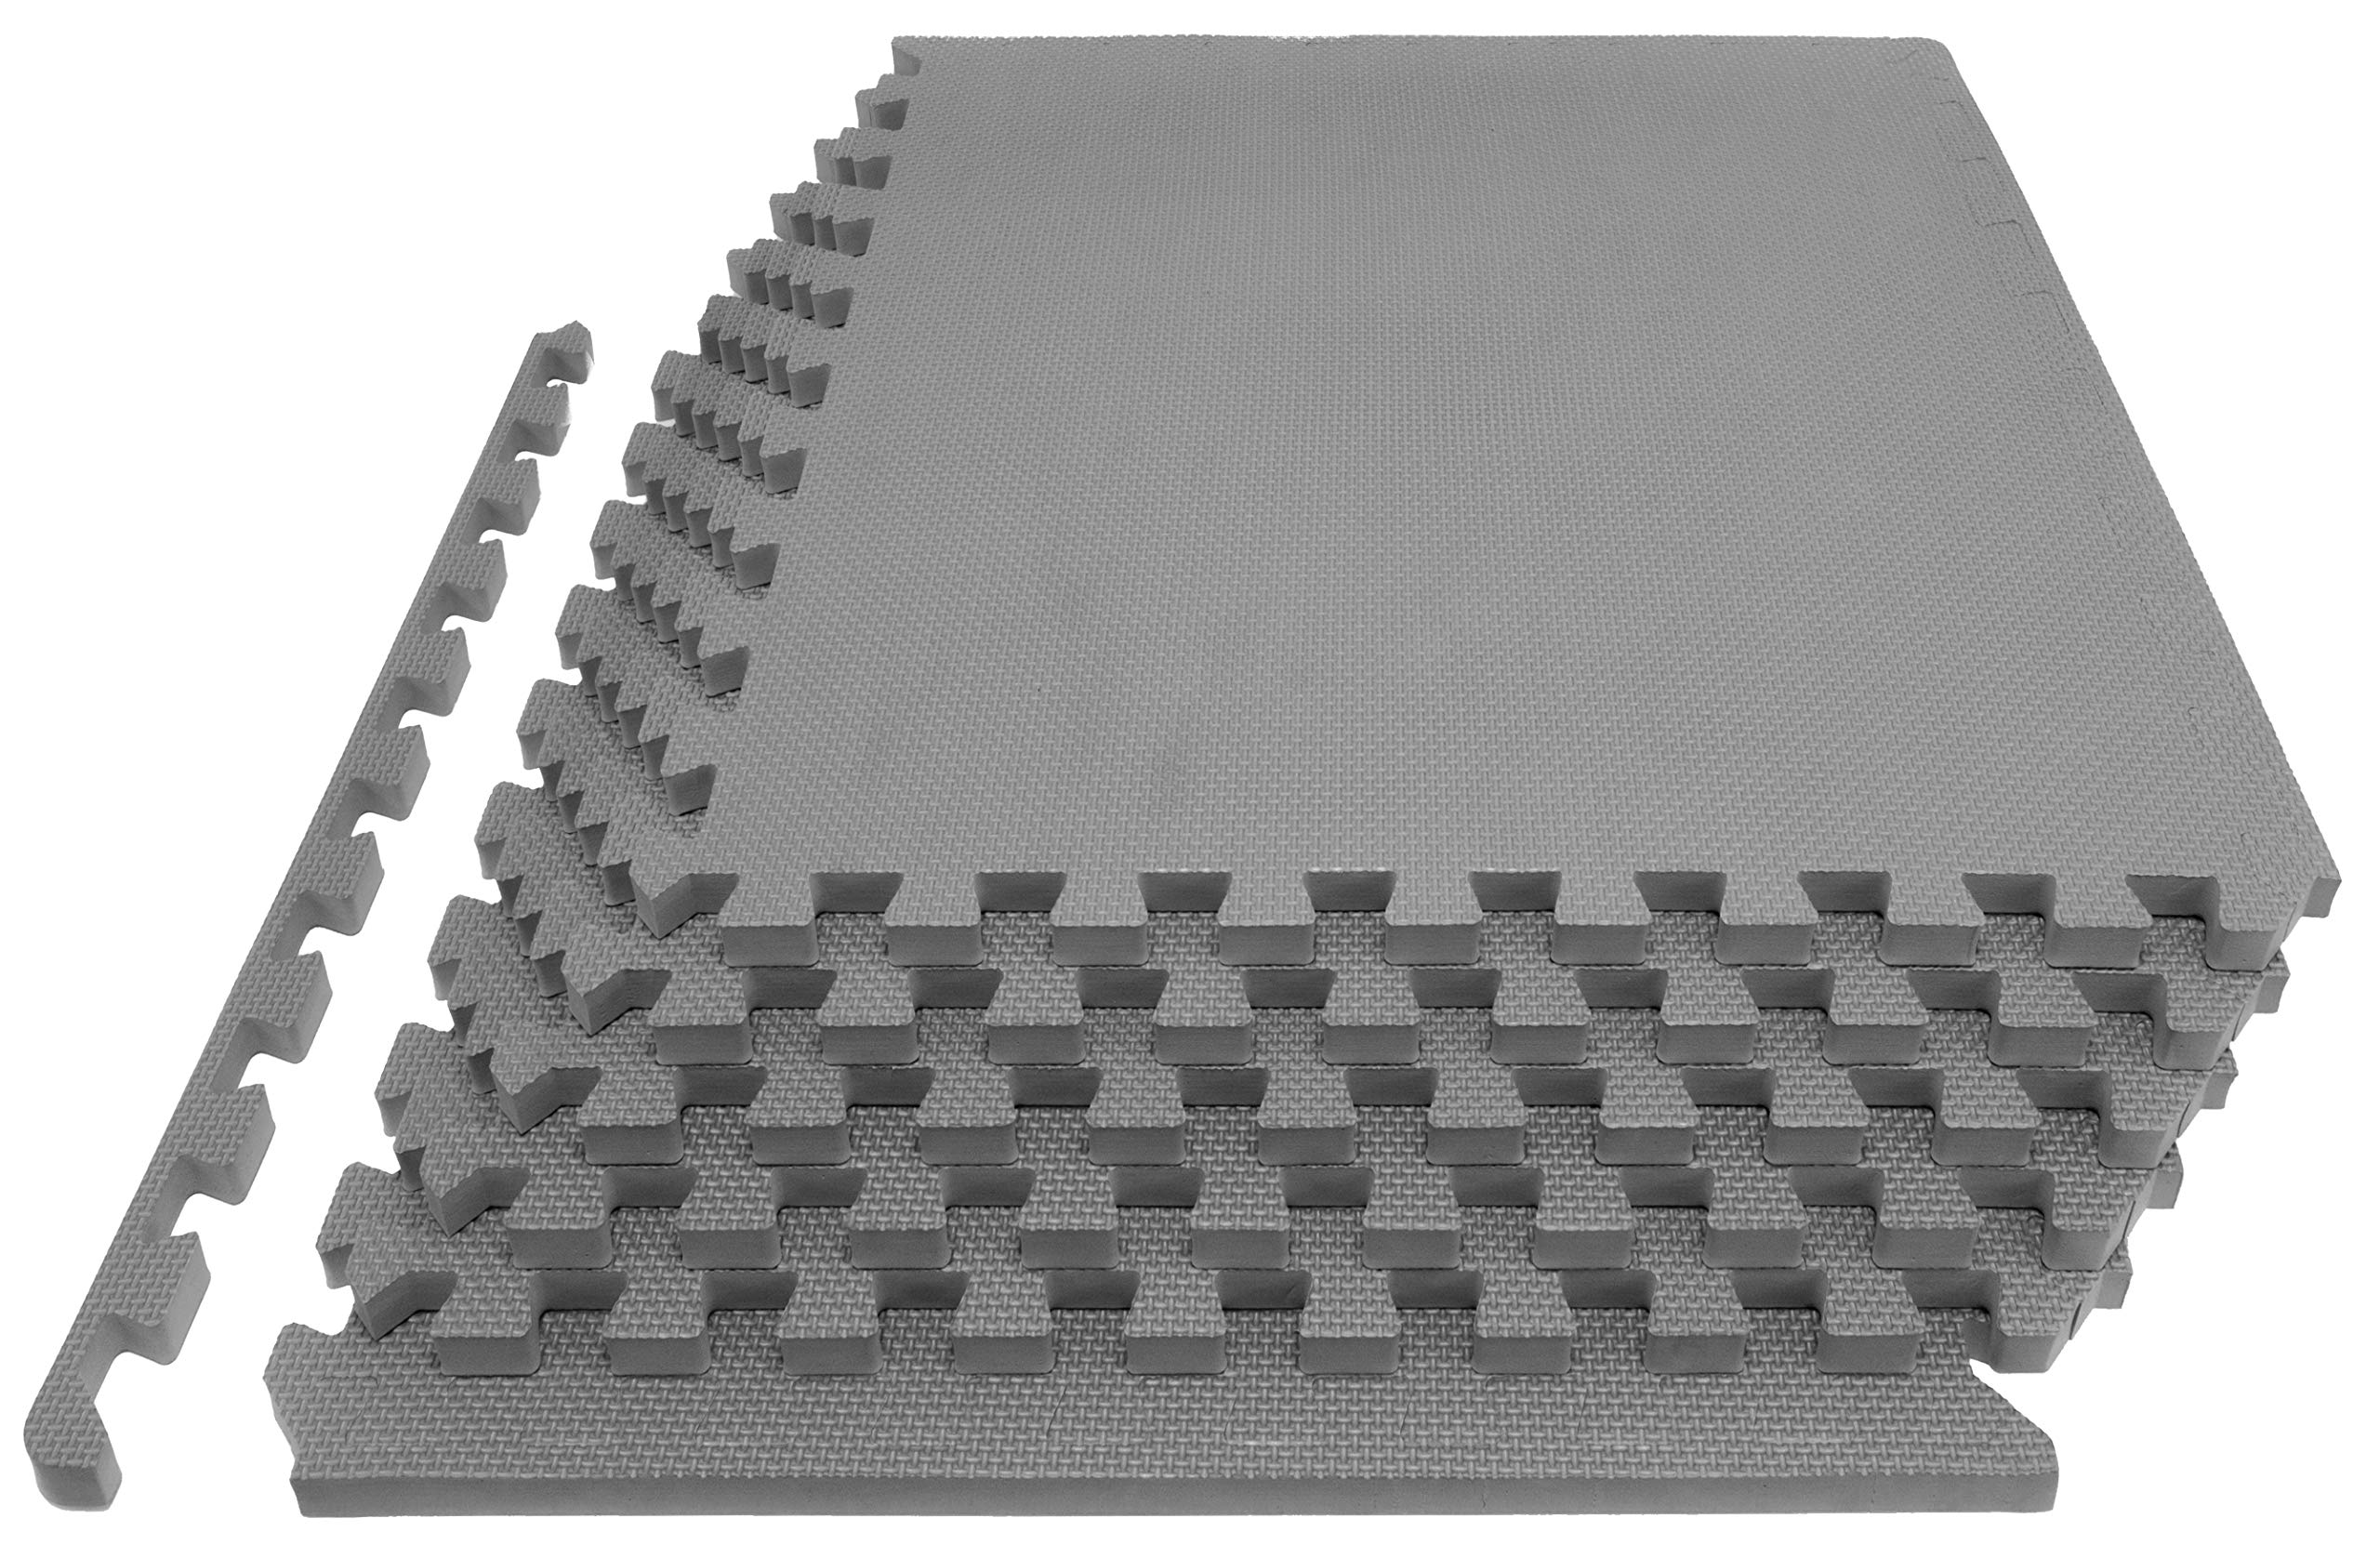 Prosource Fit Extra Thick Puzzle Exercise Mat 1'', EVA Foam Interlocking Tiles for Protective, Cushioned Workout Flooring for Home and Gym Equipment, Grey